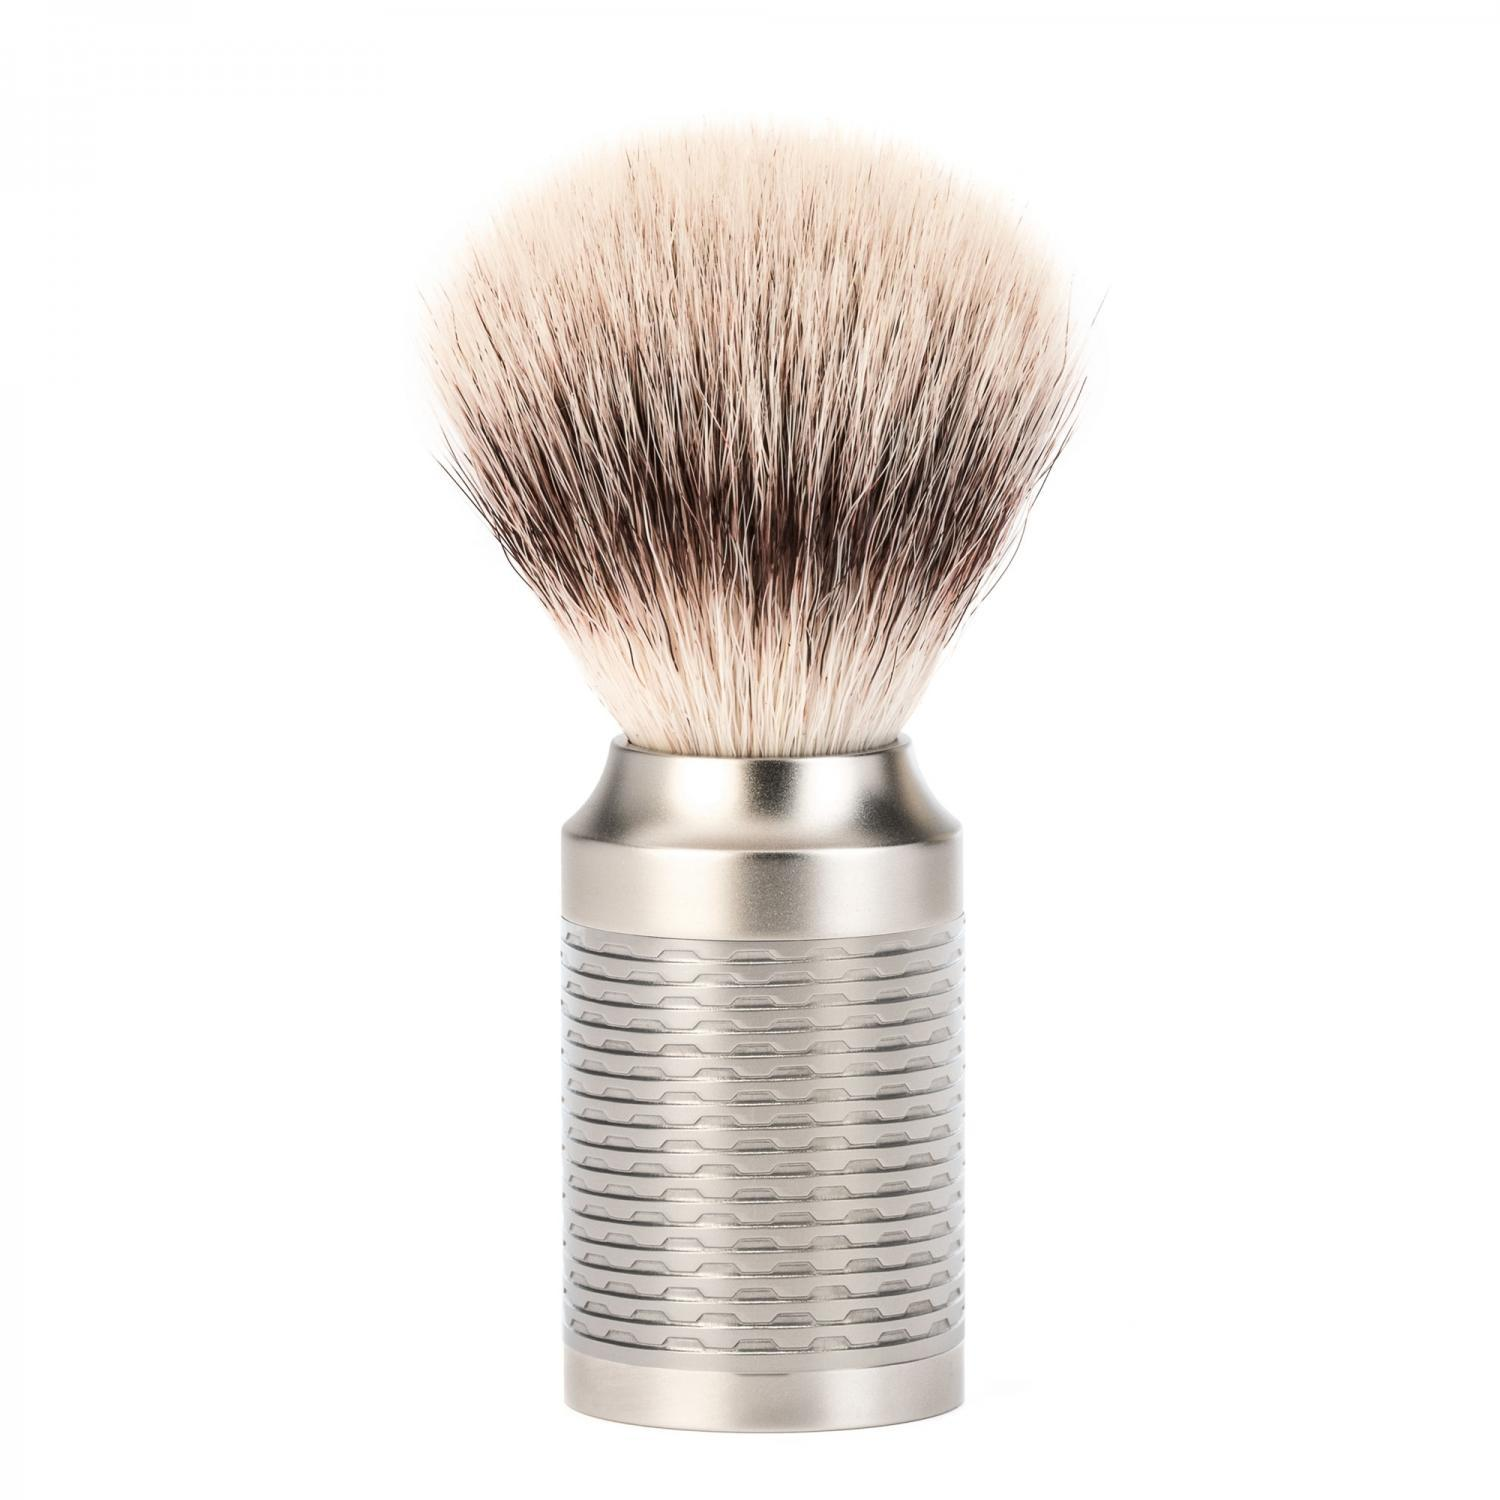 ROCCA Pure Matt Stainless Steel Silvertip Fibre Shaving Brush